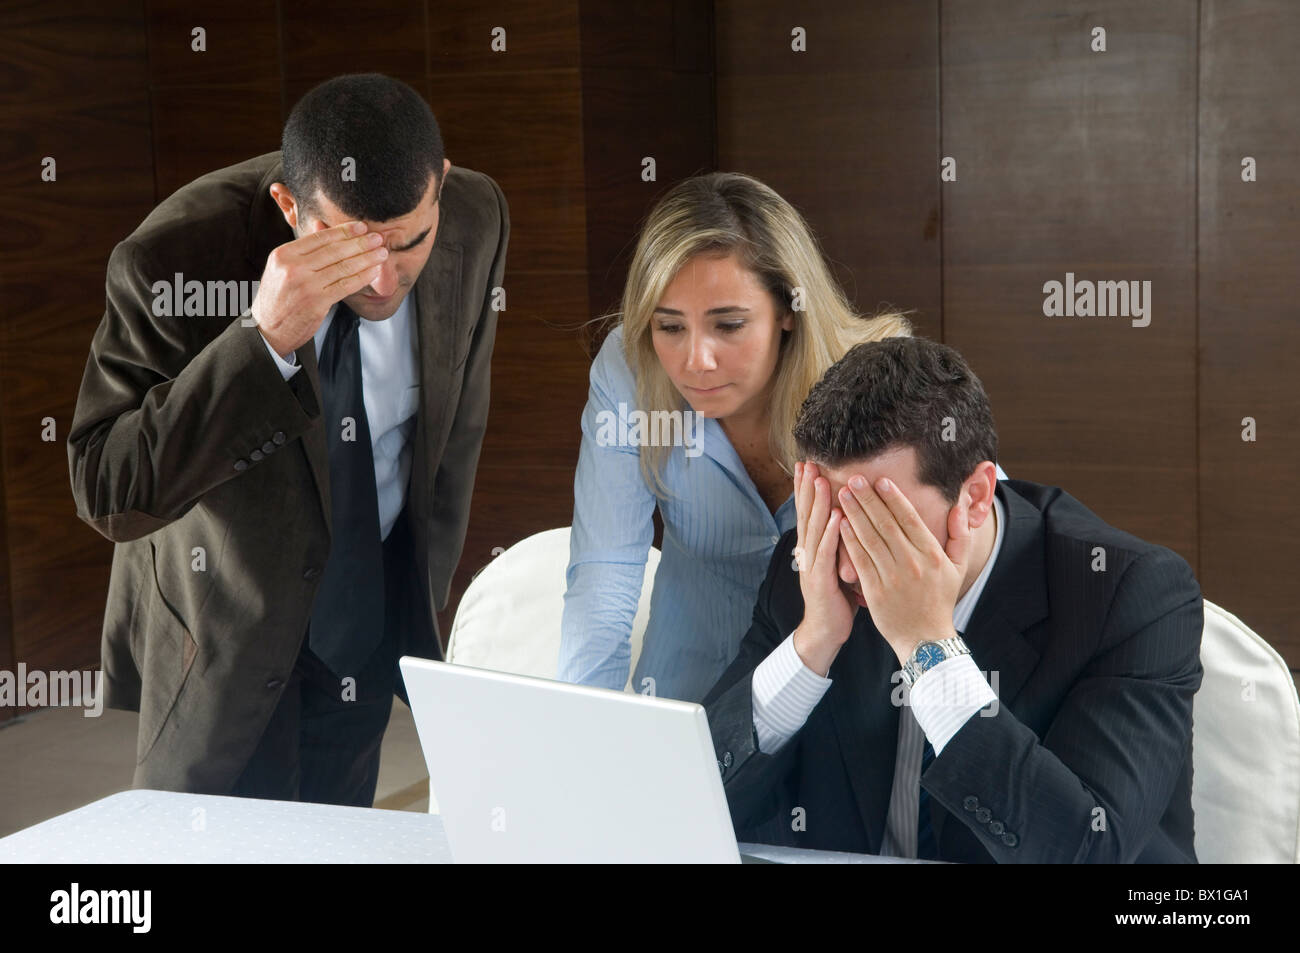 Frustrated business people at work inside office Beirut Lebanon